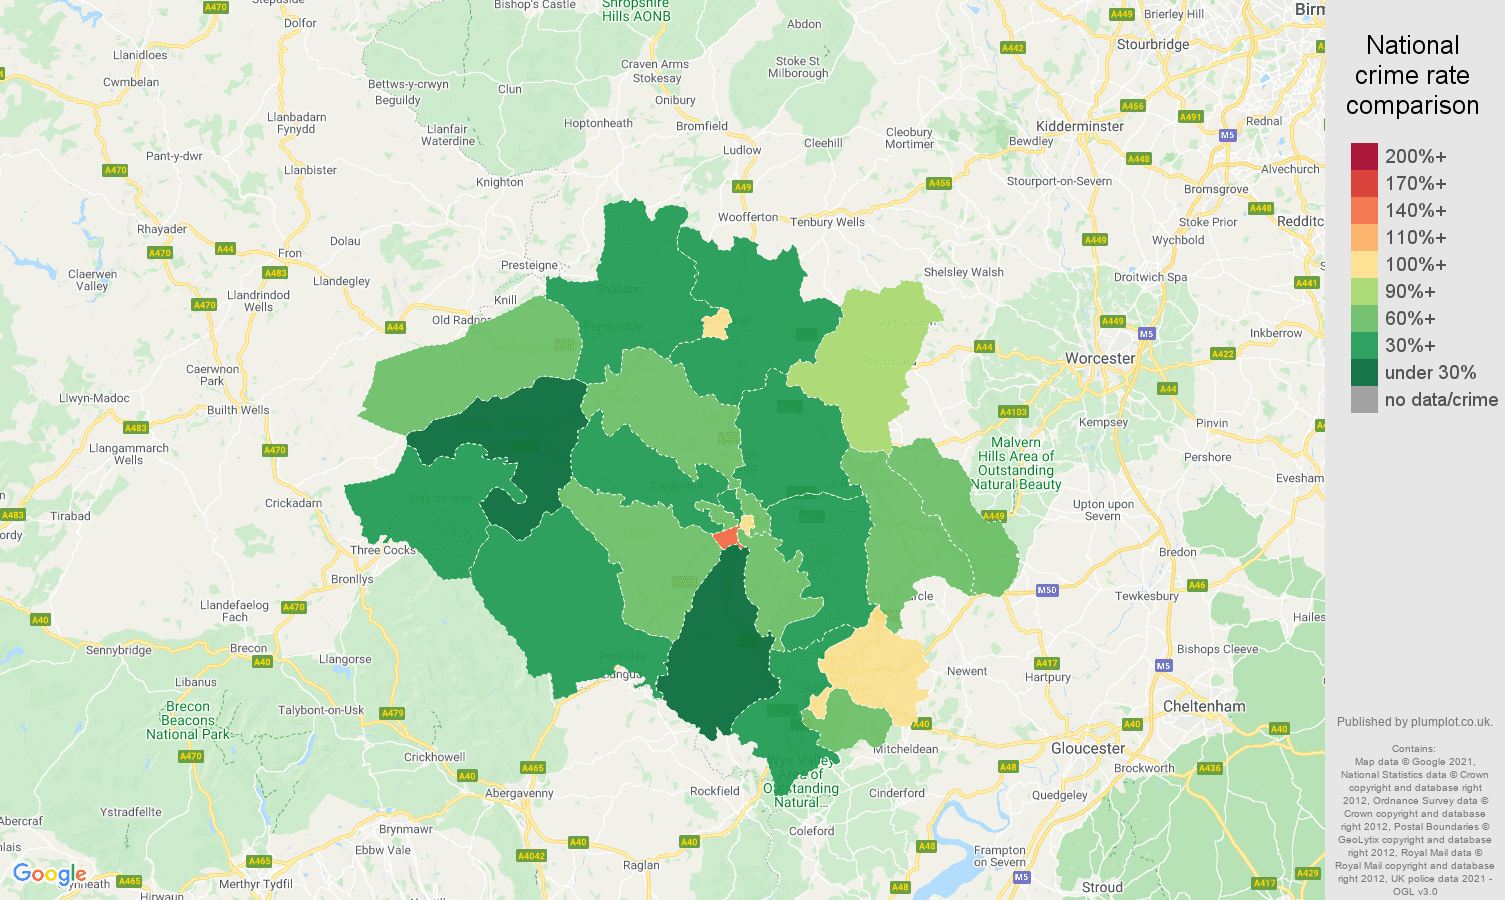 Hereford criminal damage and arson crime rate comparison map